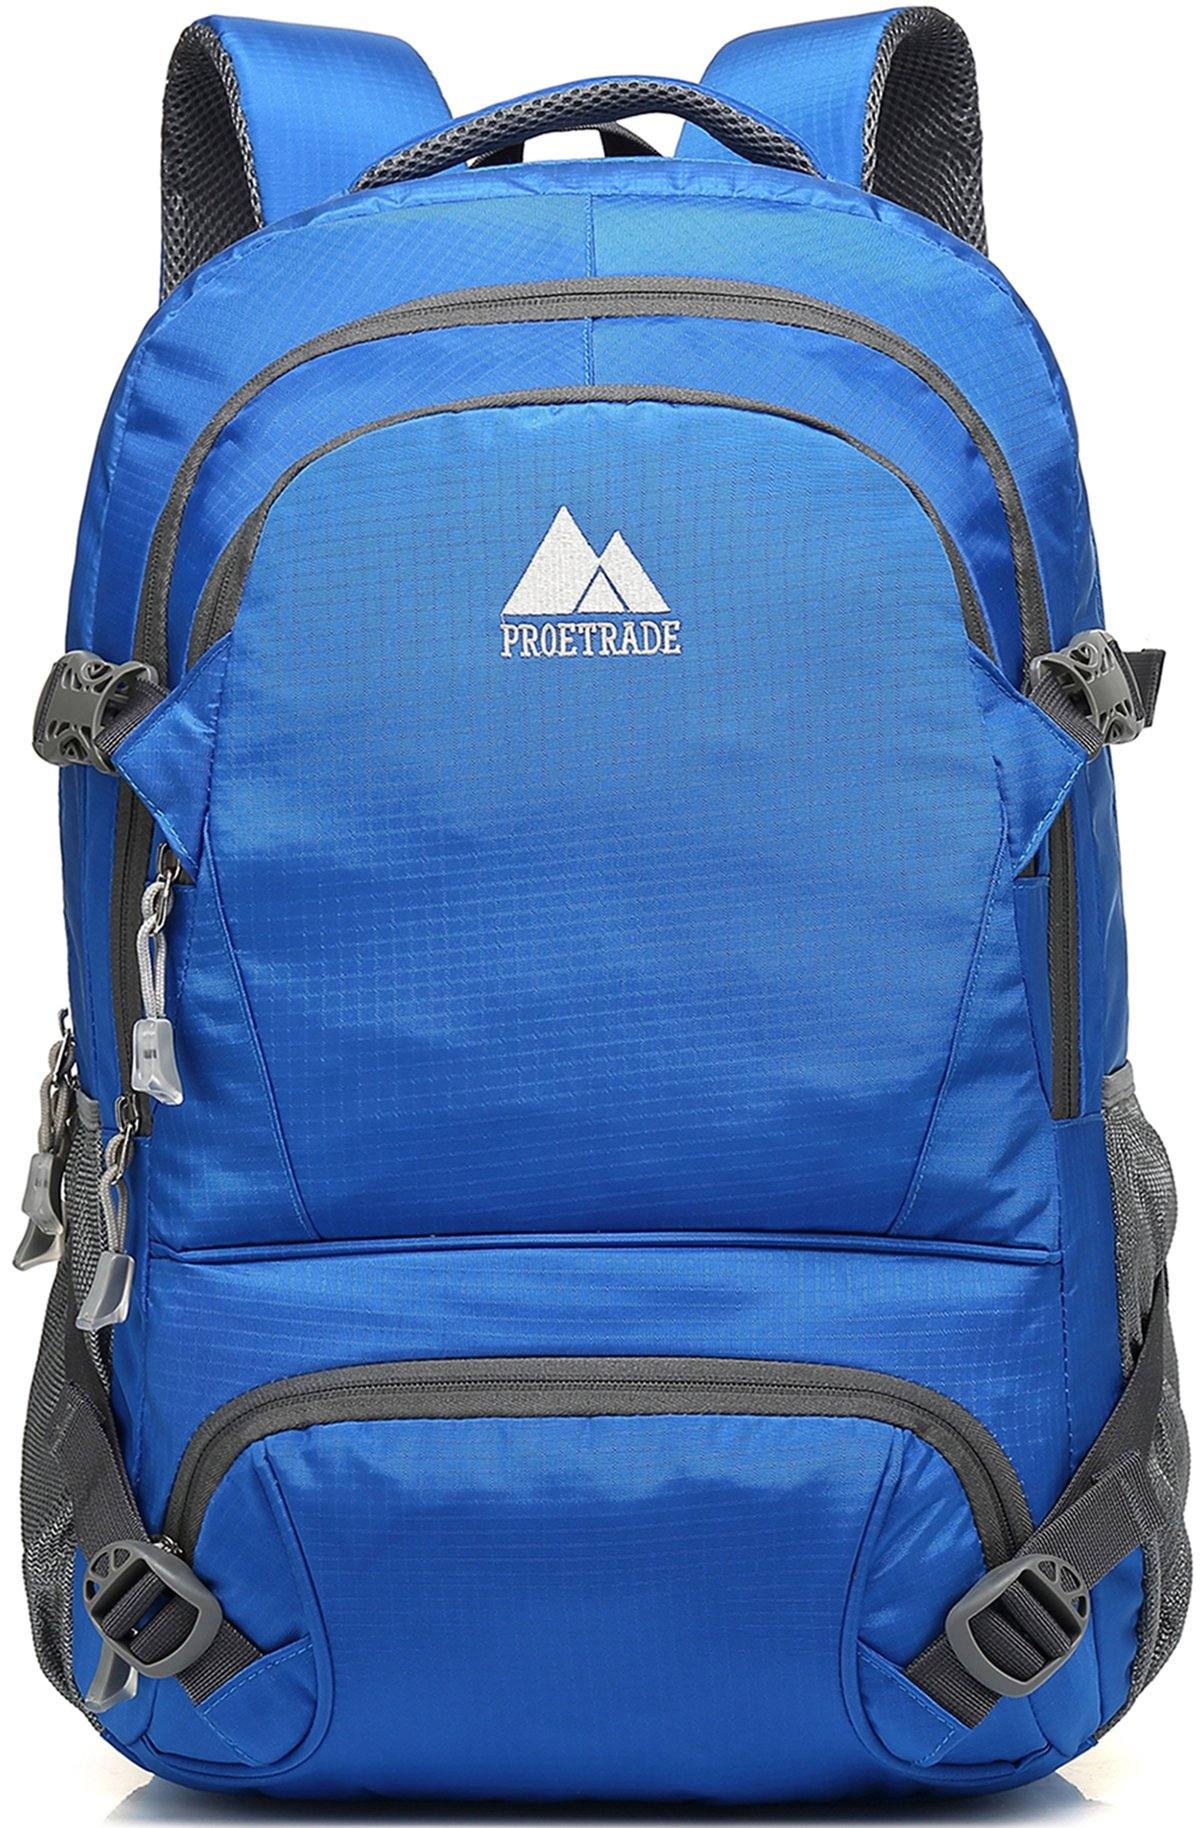 Extra Large School Backpack For College Travel Hiking Fit Laptop Up to 17 Inch Water Resistant (Blue A)